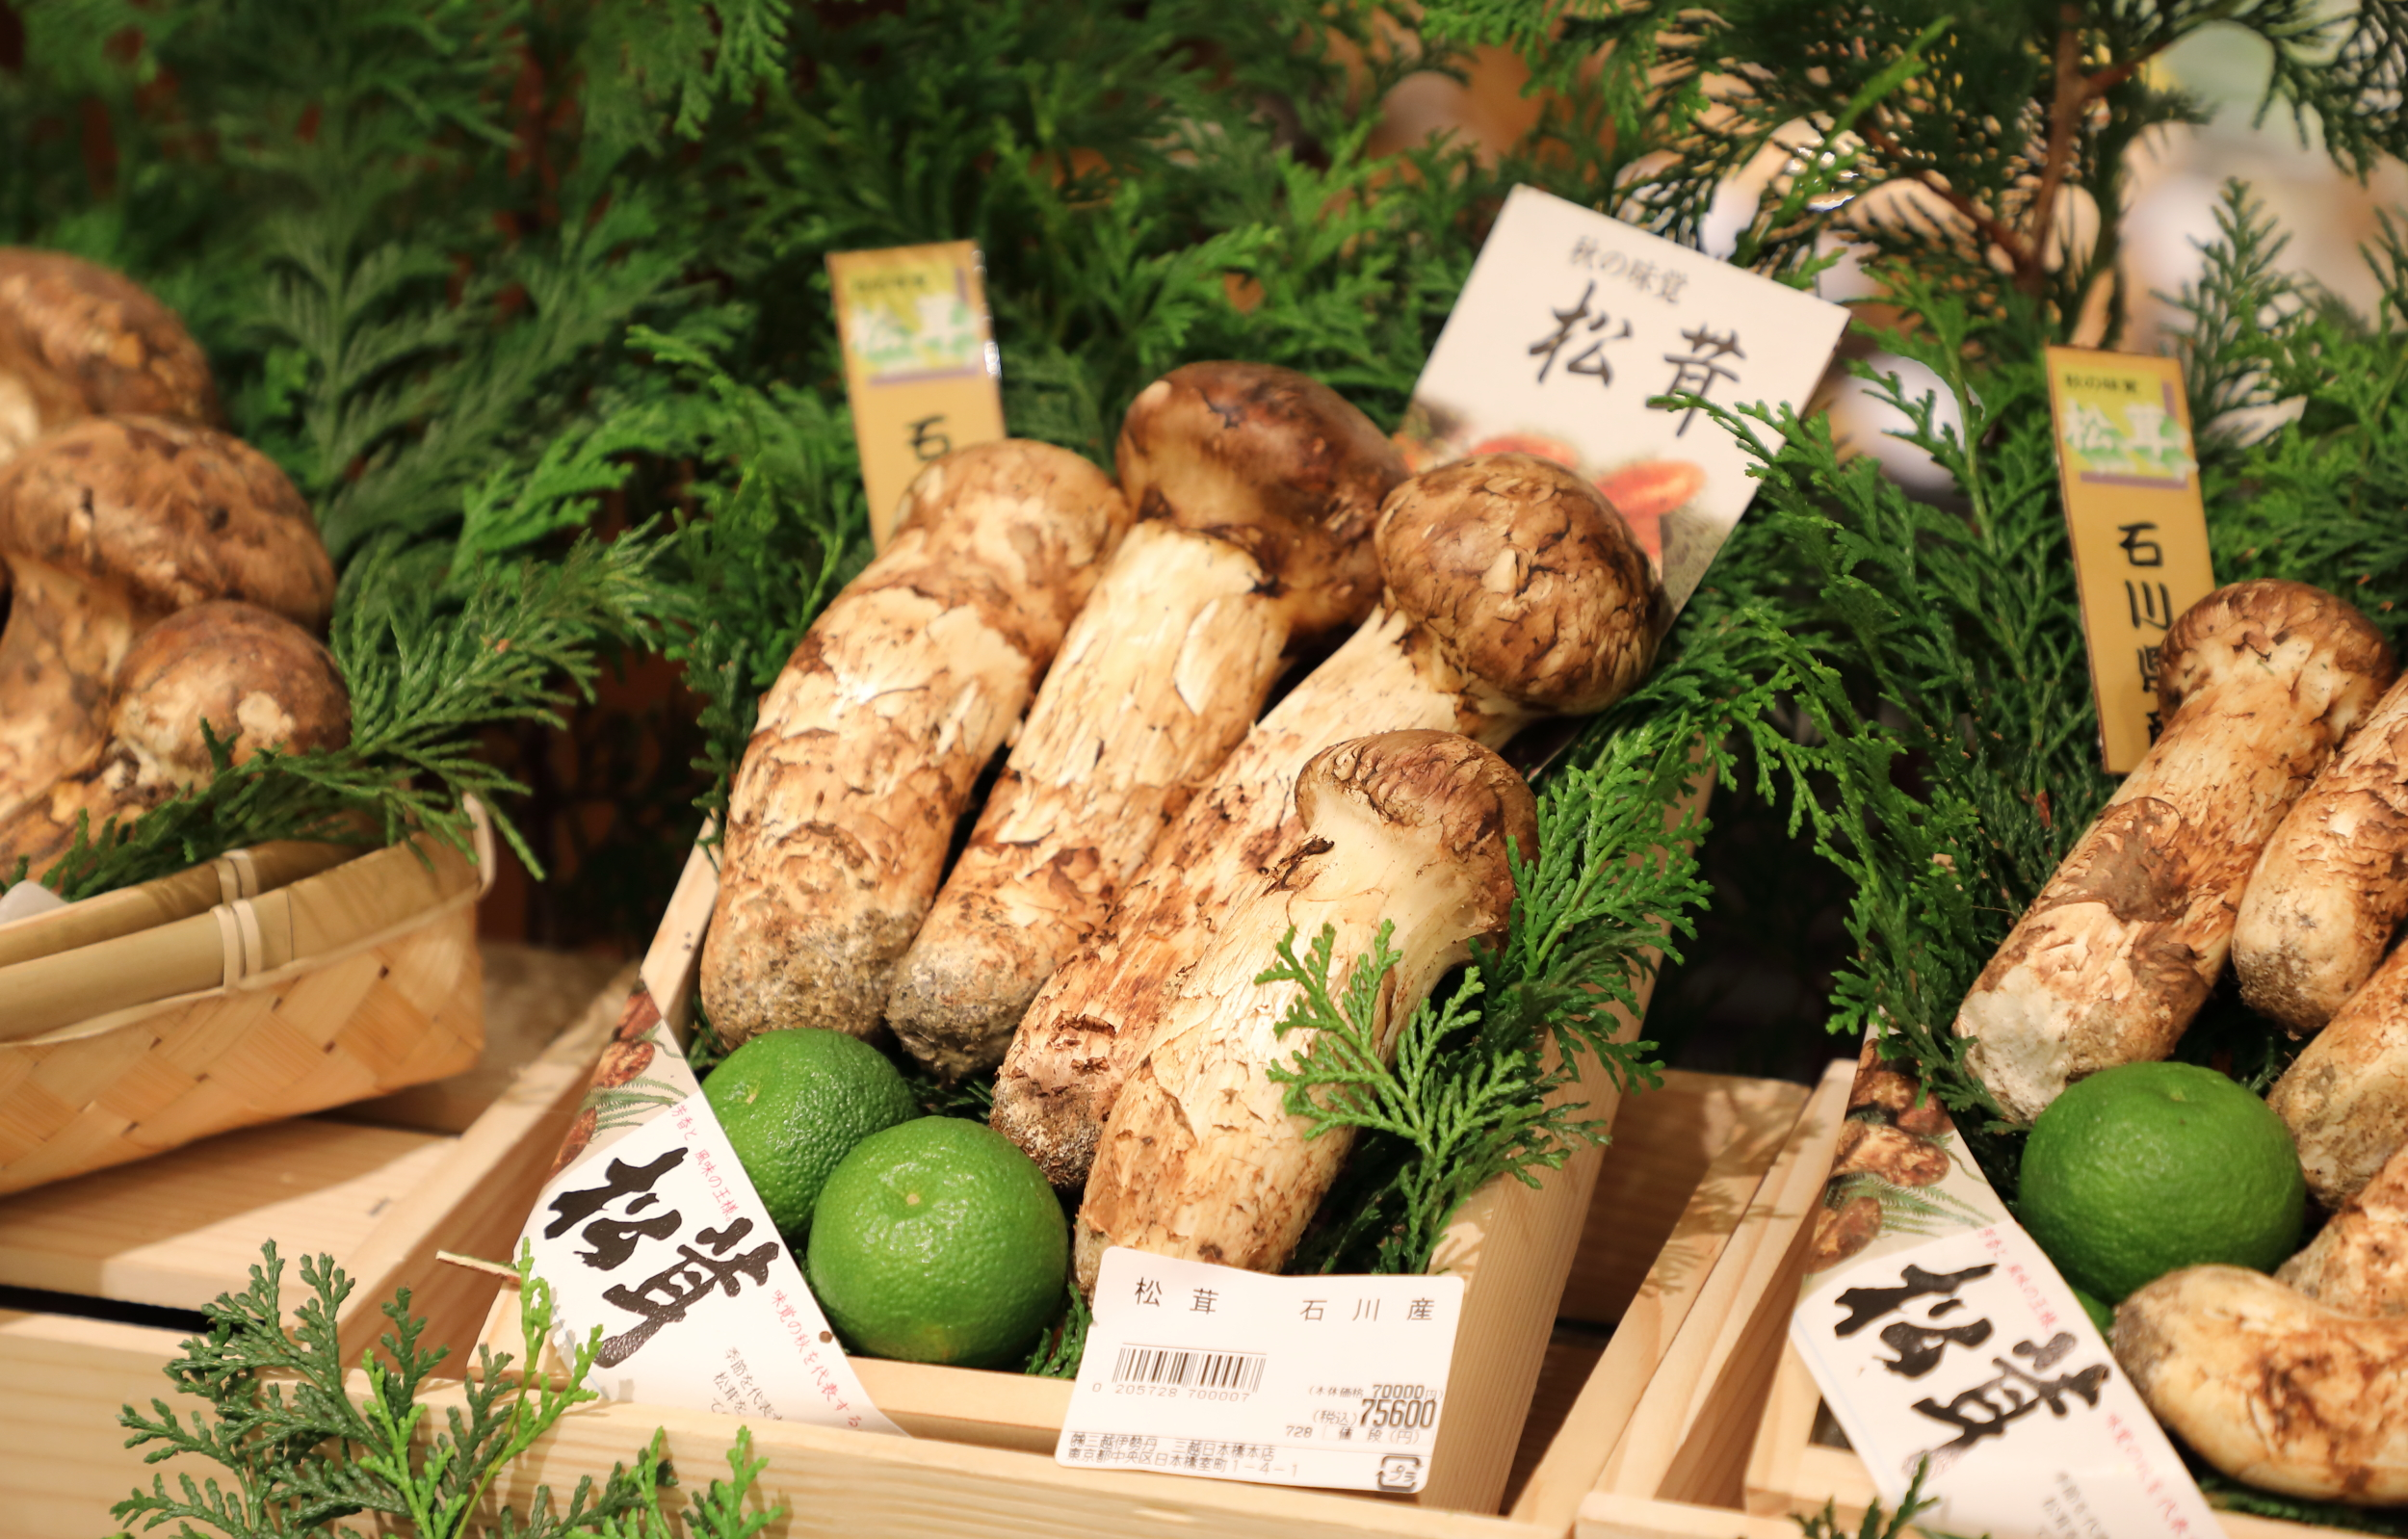 The role that a few drops of freshly-squeezed  sudachi  juice plays in bringing out the delicate earthy flavors of expensive  matsutake  mushrooms is so important that the two foods are almost always sold together.